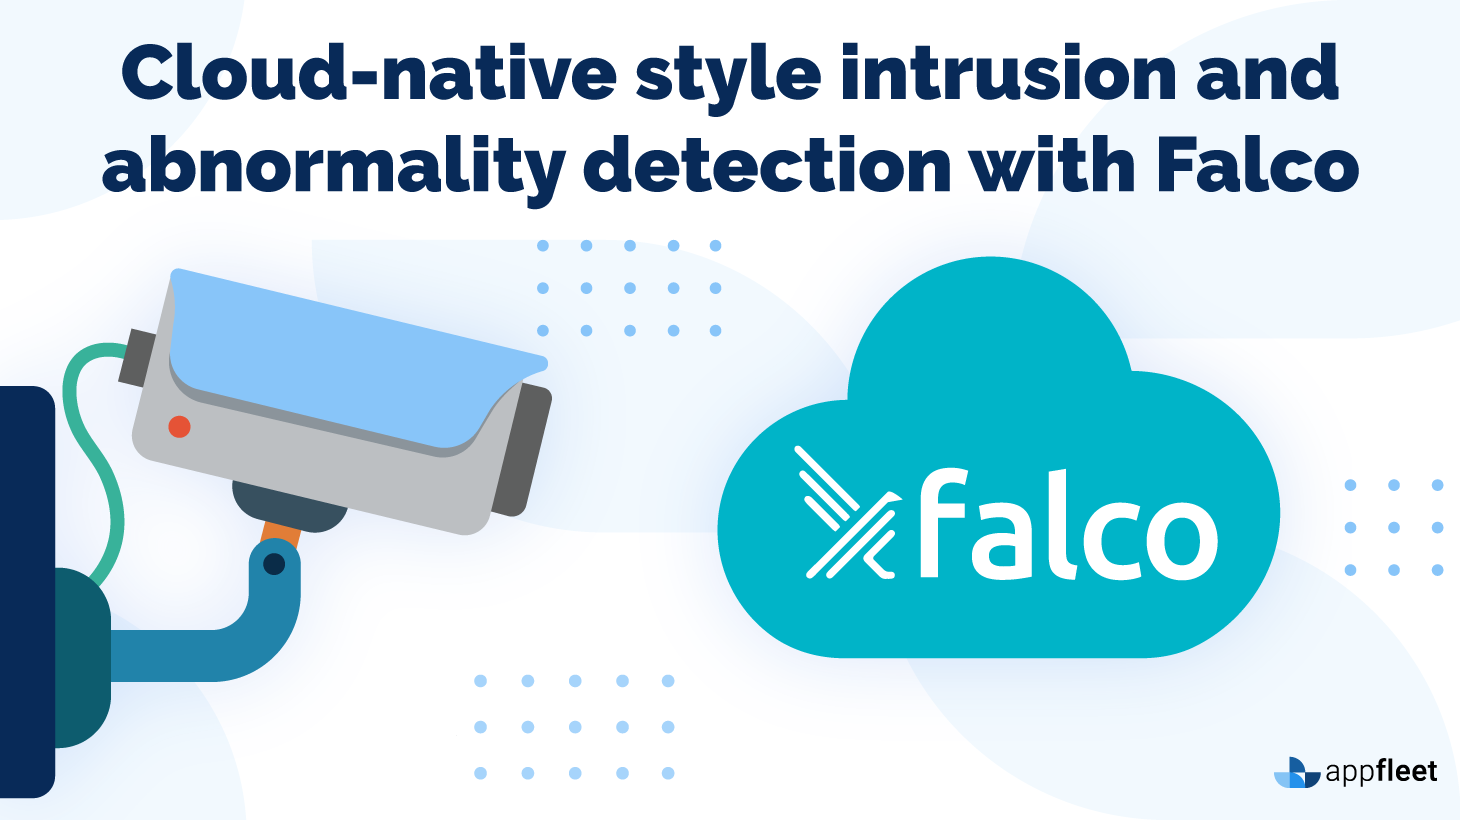 Cloud-native style intrusion and abnormality detection with Falco